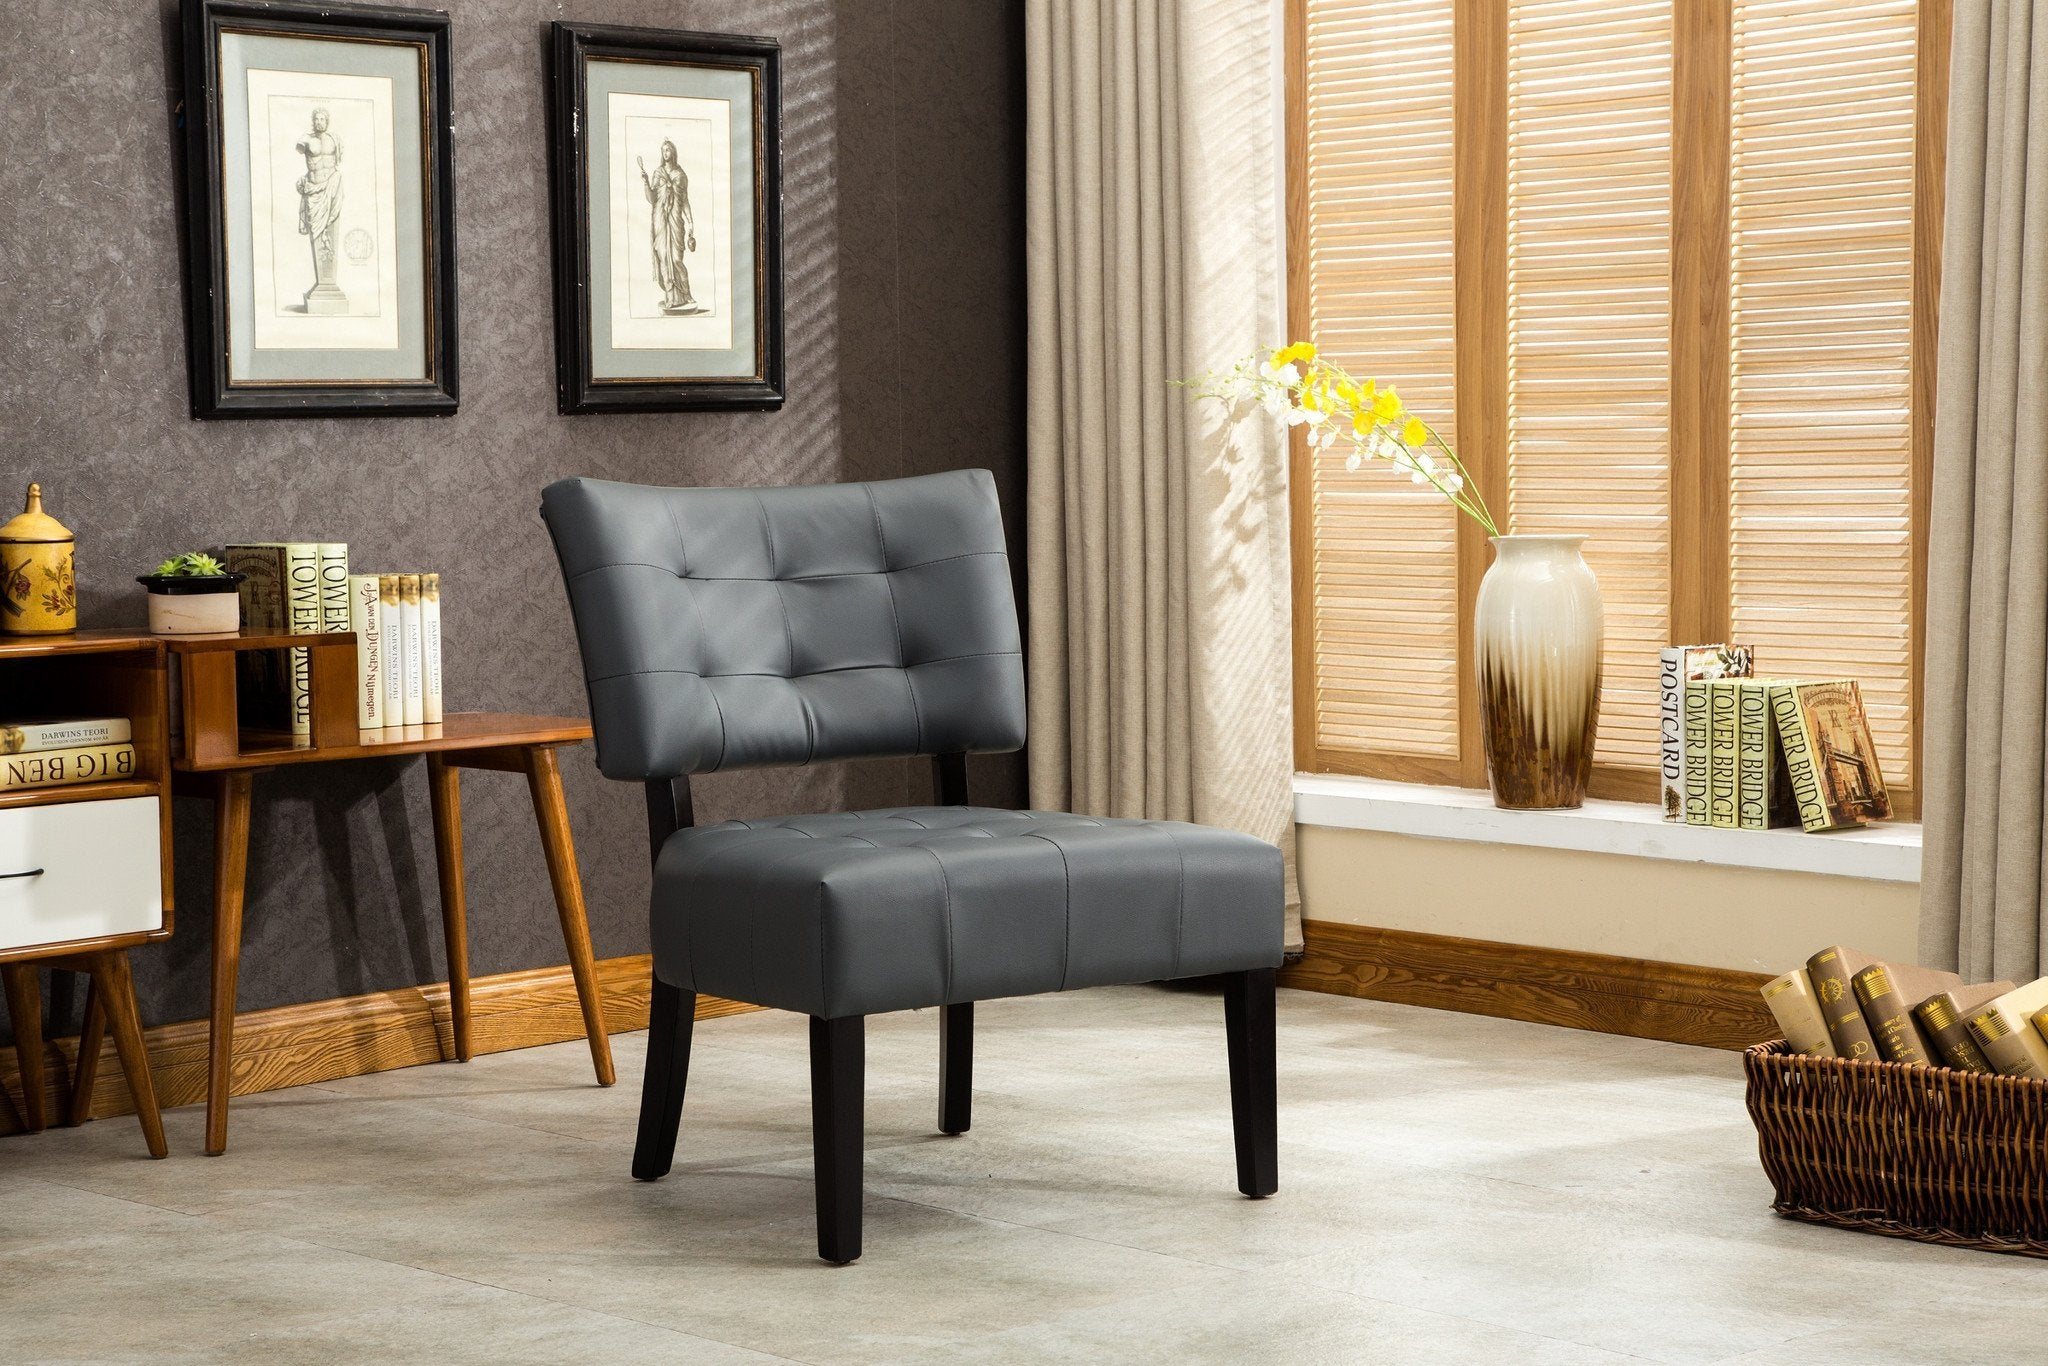 Bally Blended Grey Leather Tufted Dining Chair with Oversized Seating